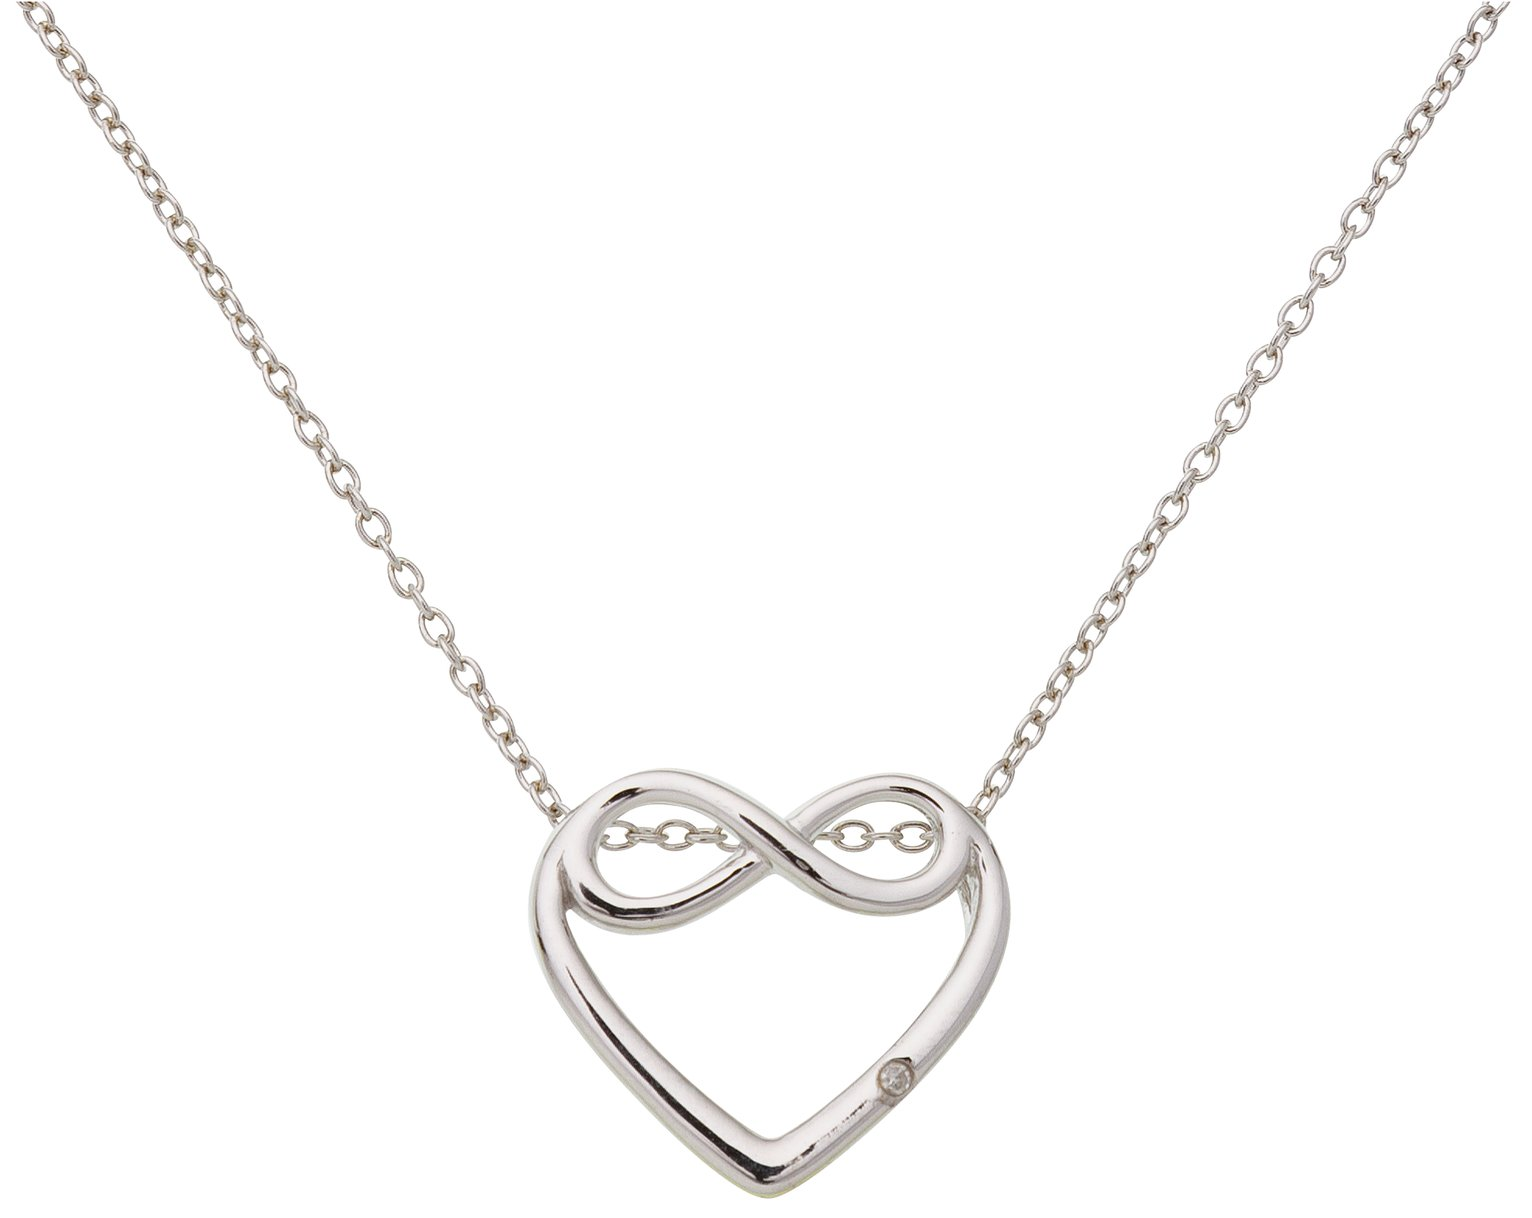 Image of Accents by Hot Diamonds Silver Infinity Heart Pendant